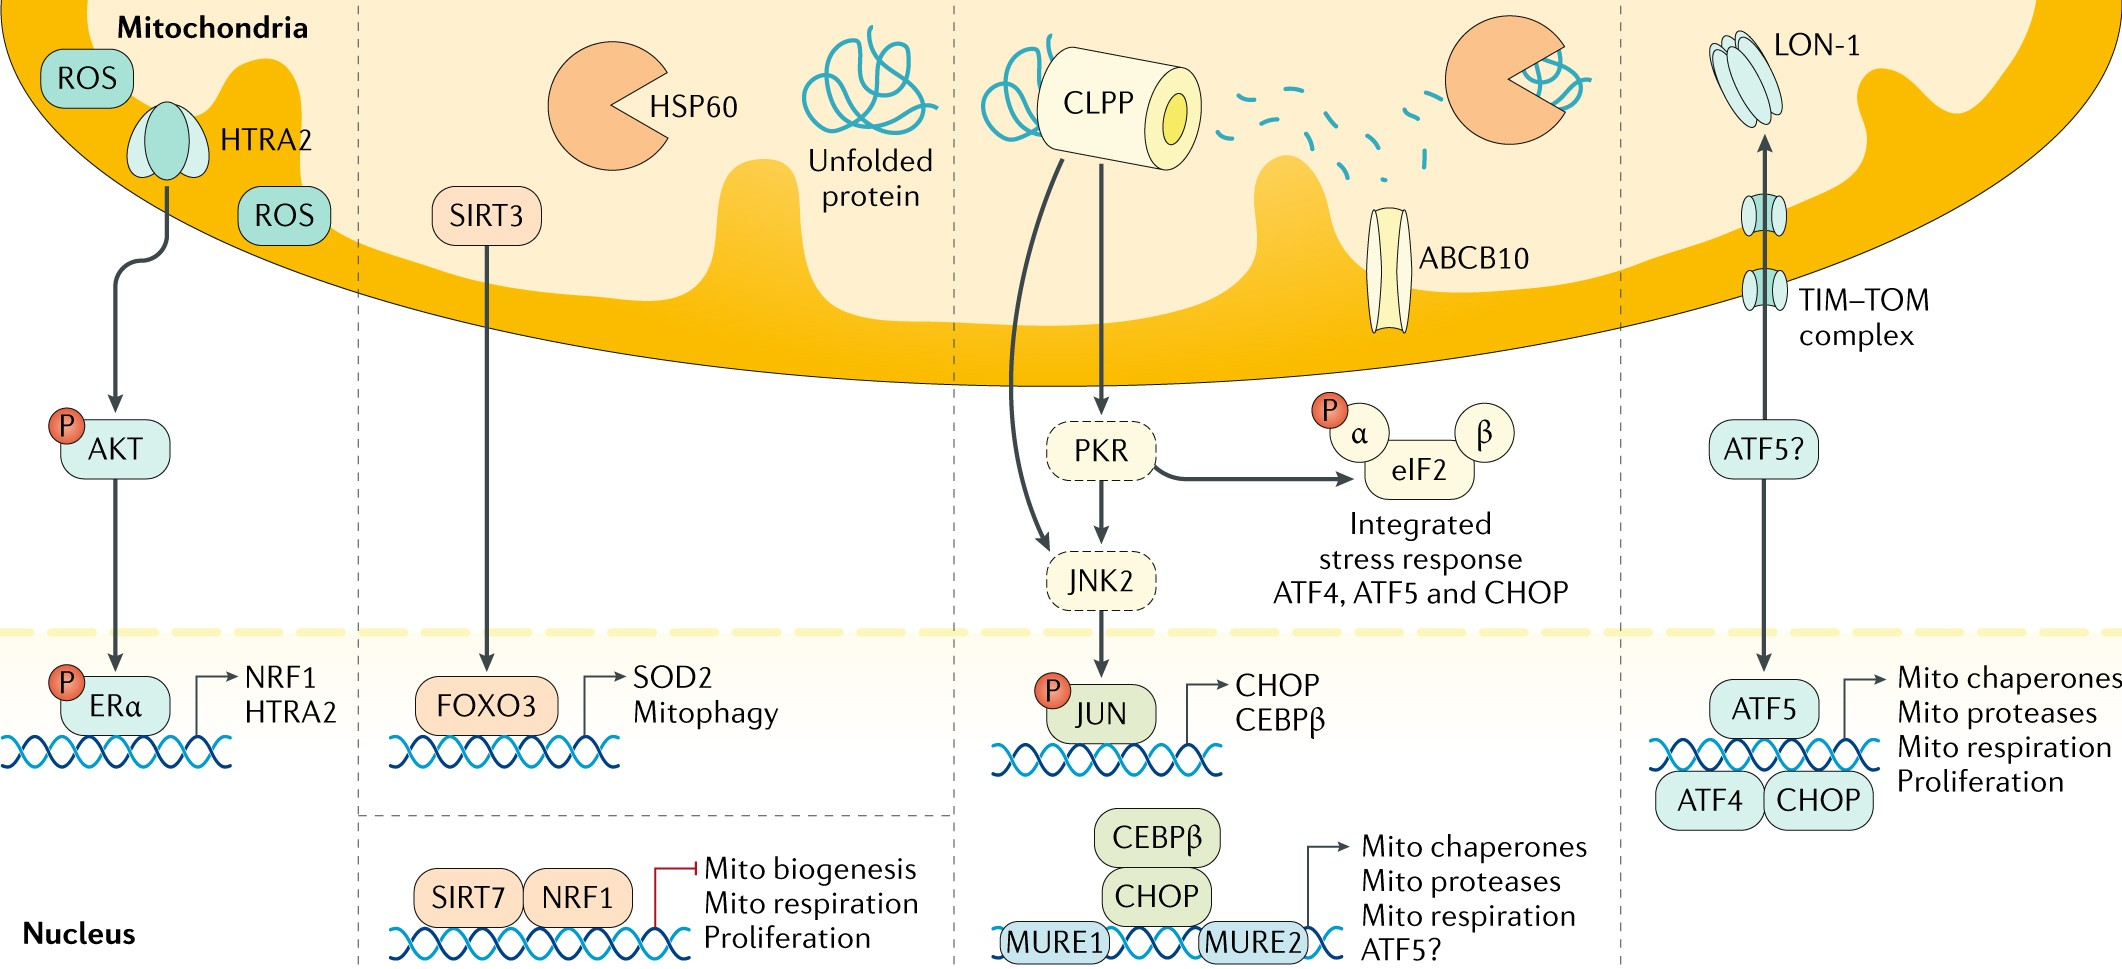 Mitochondrial Function Gatekeeper Of Intestinal Epithelial Cell Accessories Fm Gain Signal 180 Homeostasis Nature Reviews Gastroenterology Hepatology